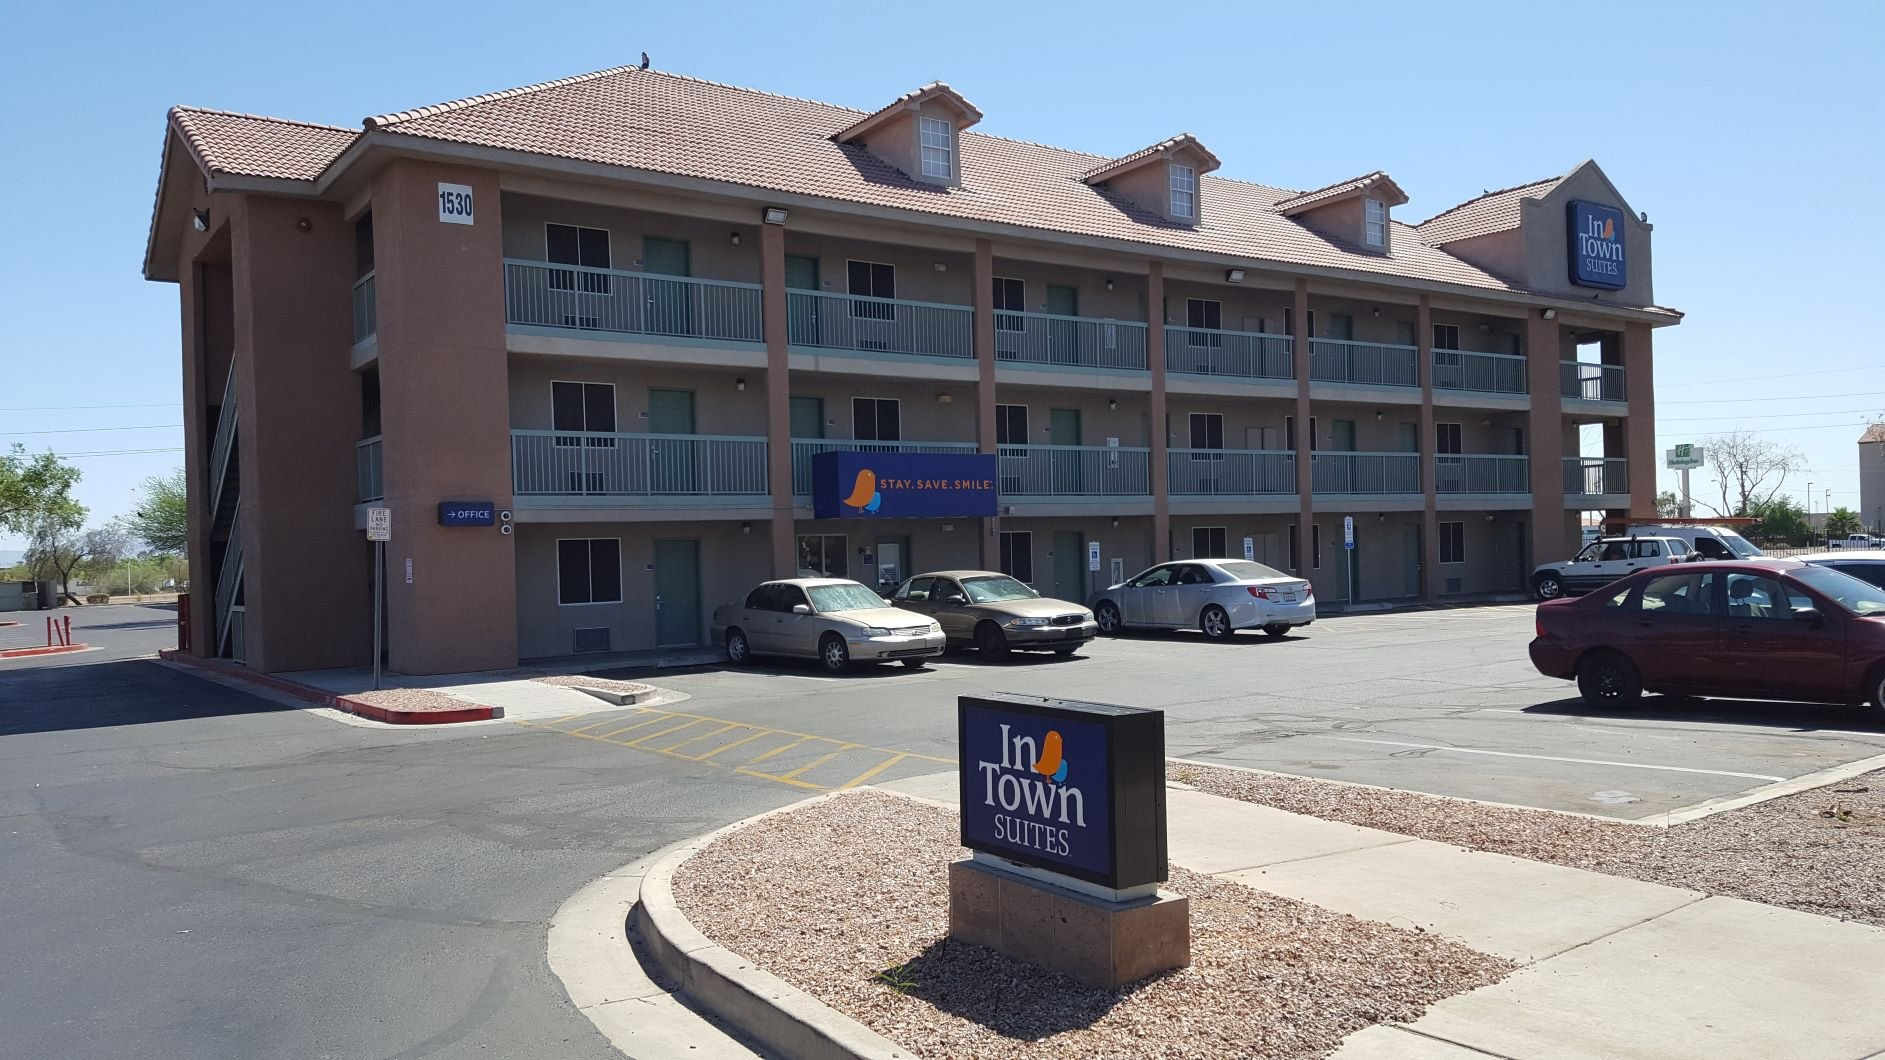 InTown Suites Extended Stay Phoenix AZ - East